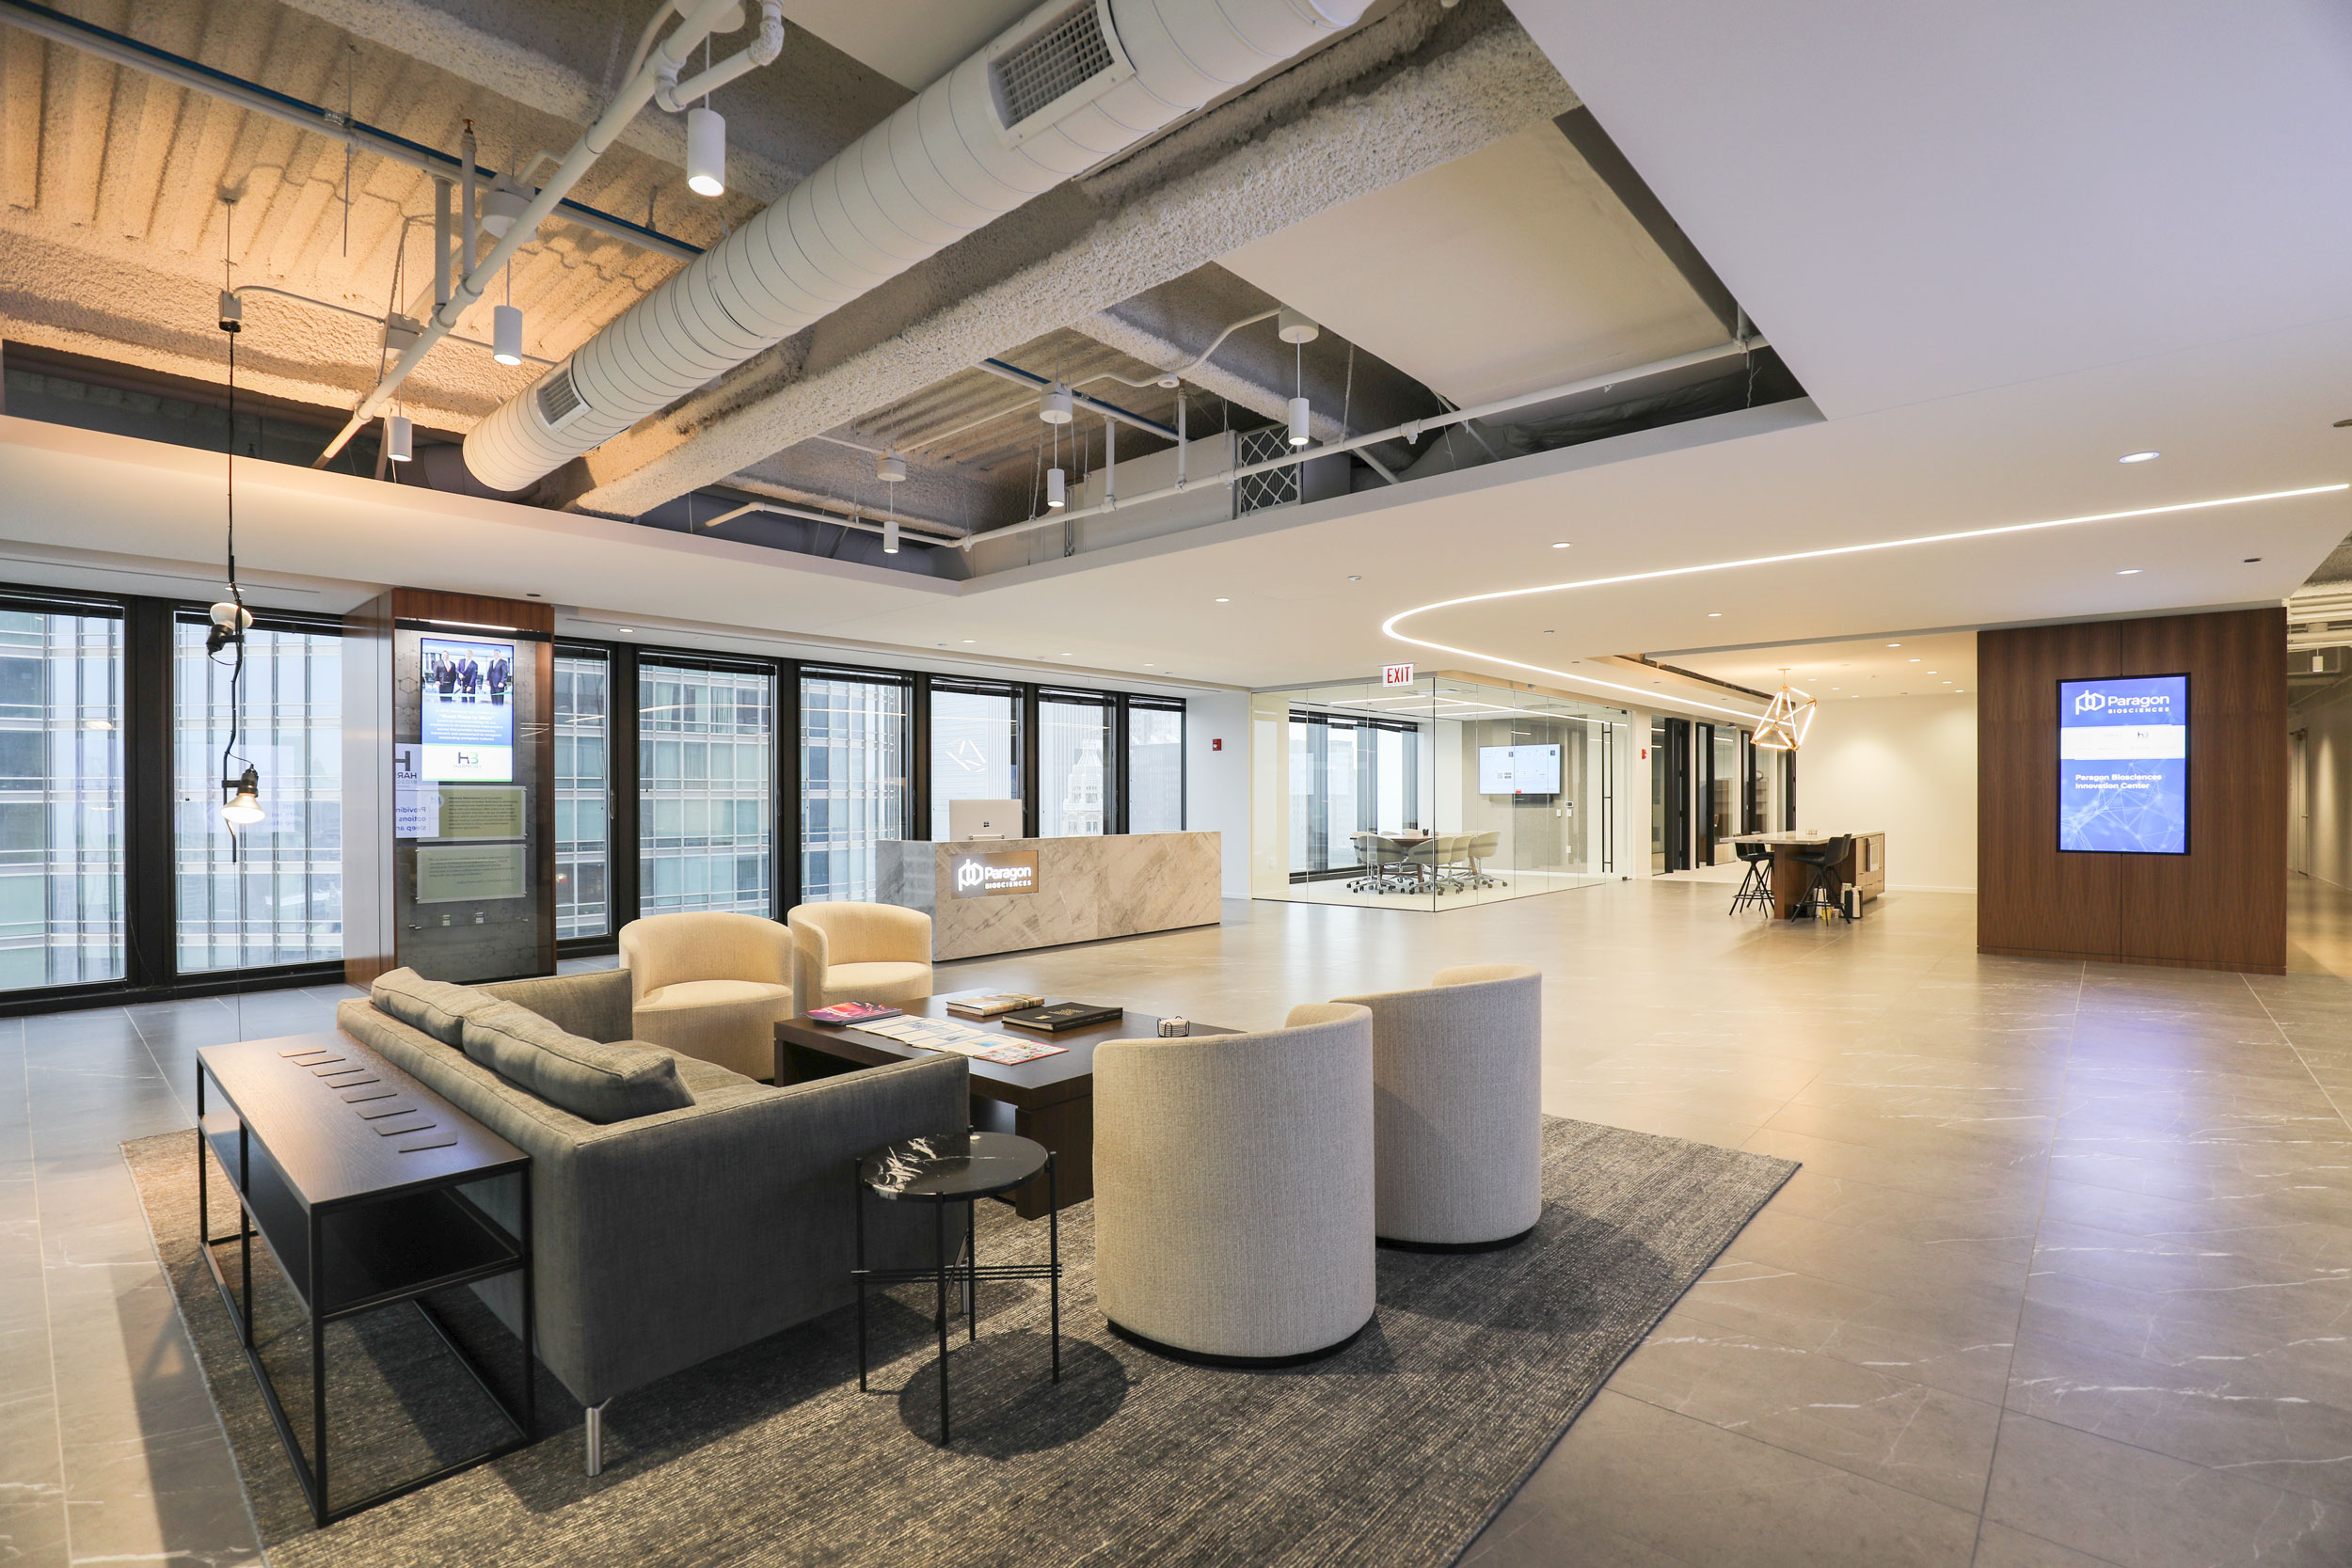 Skender Completes Interior Construction of Paragon Biosciences' New HQ